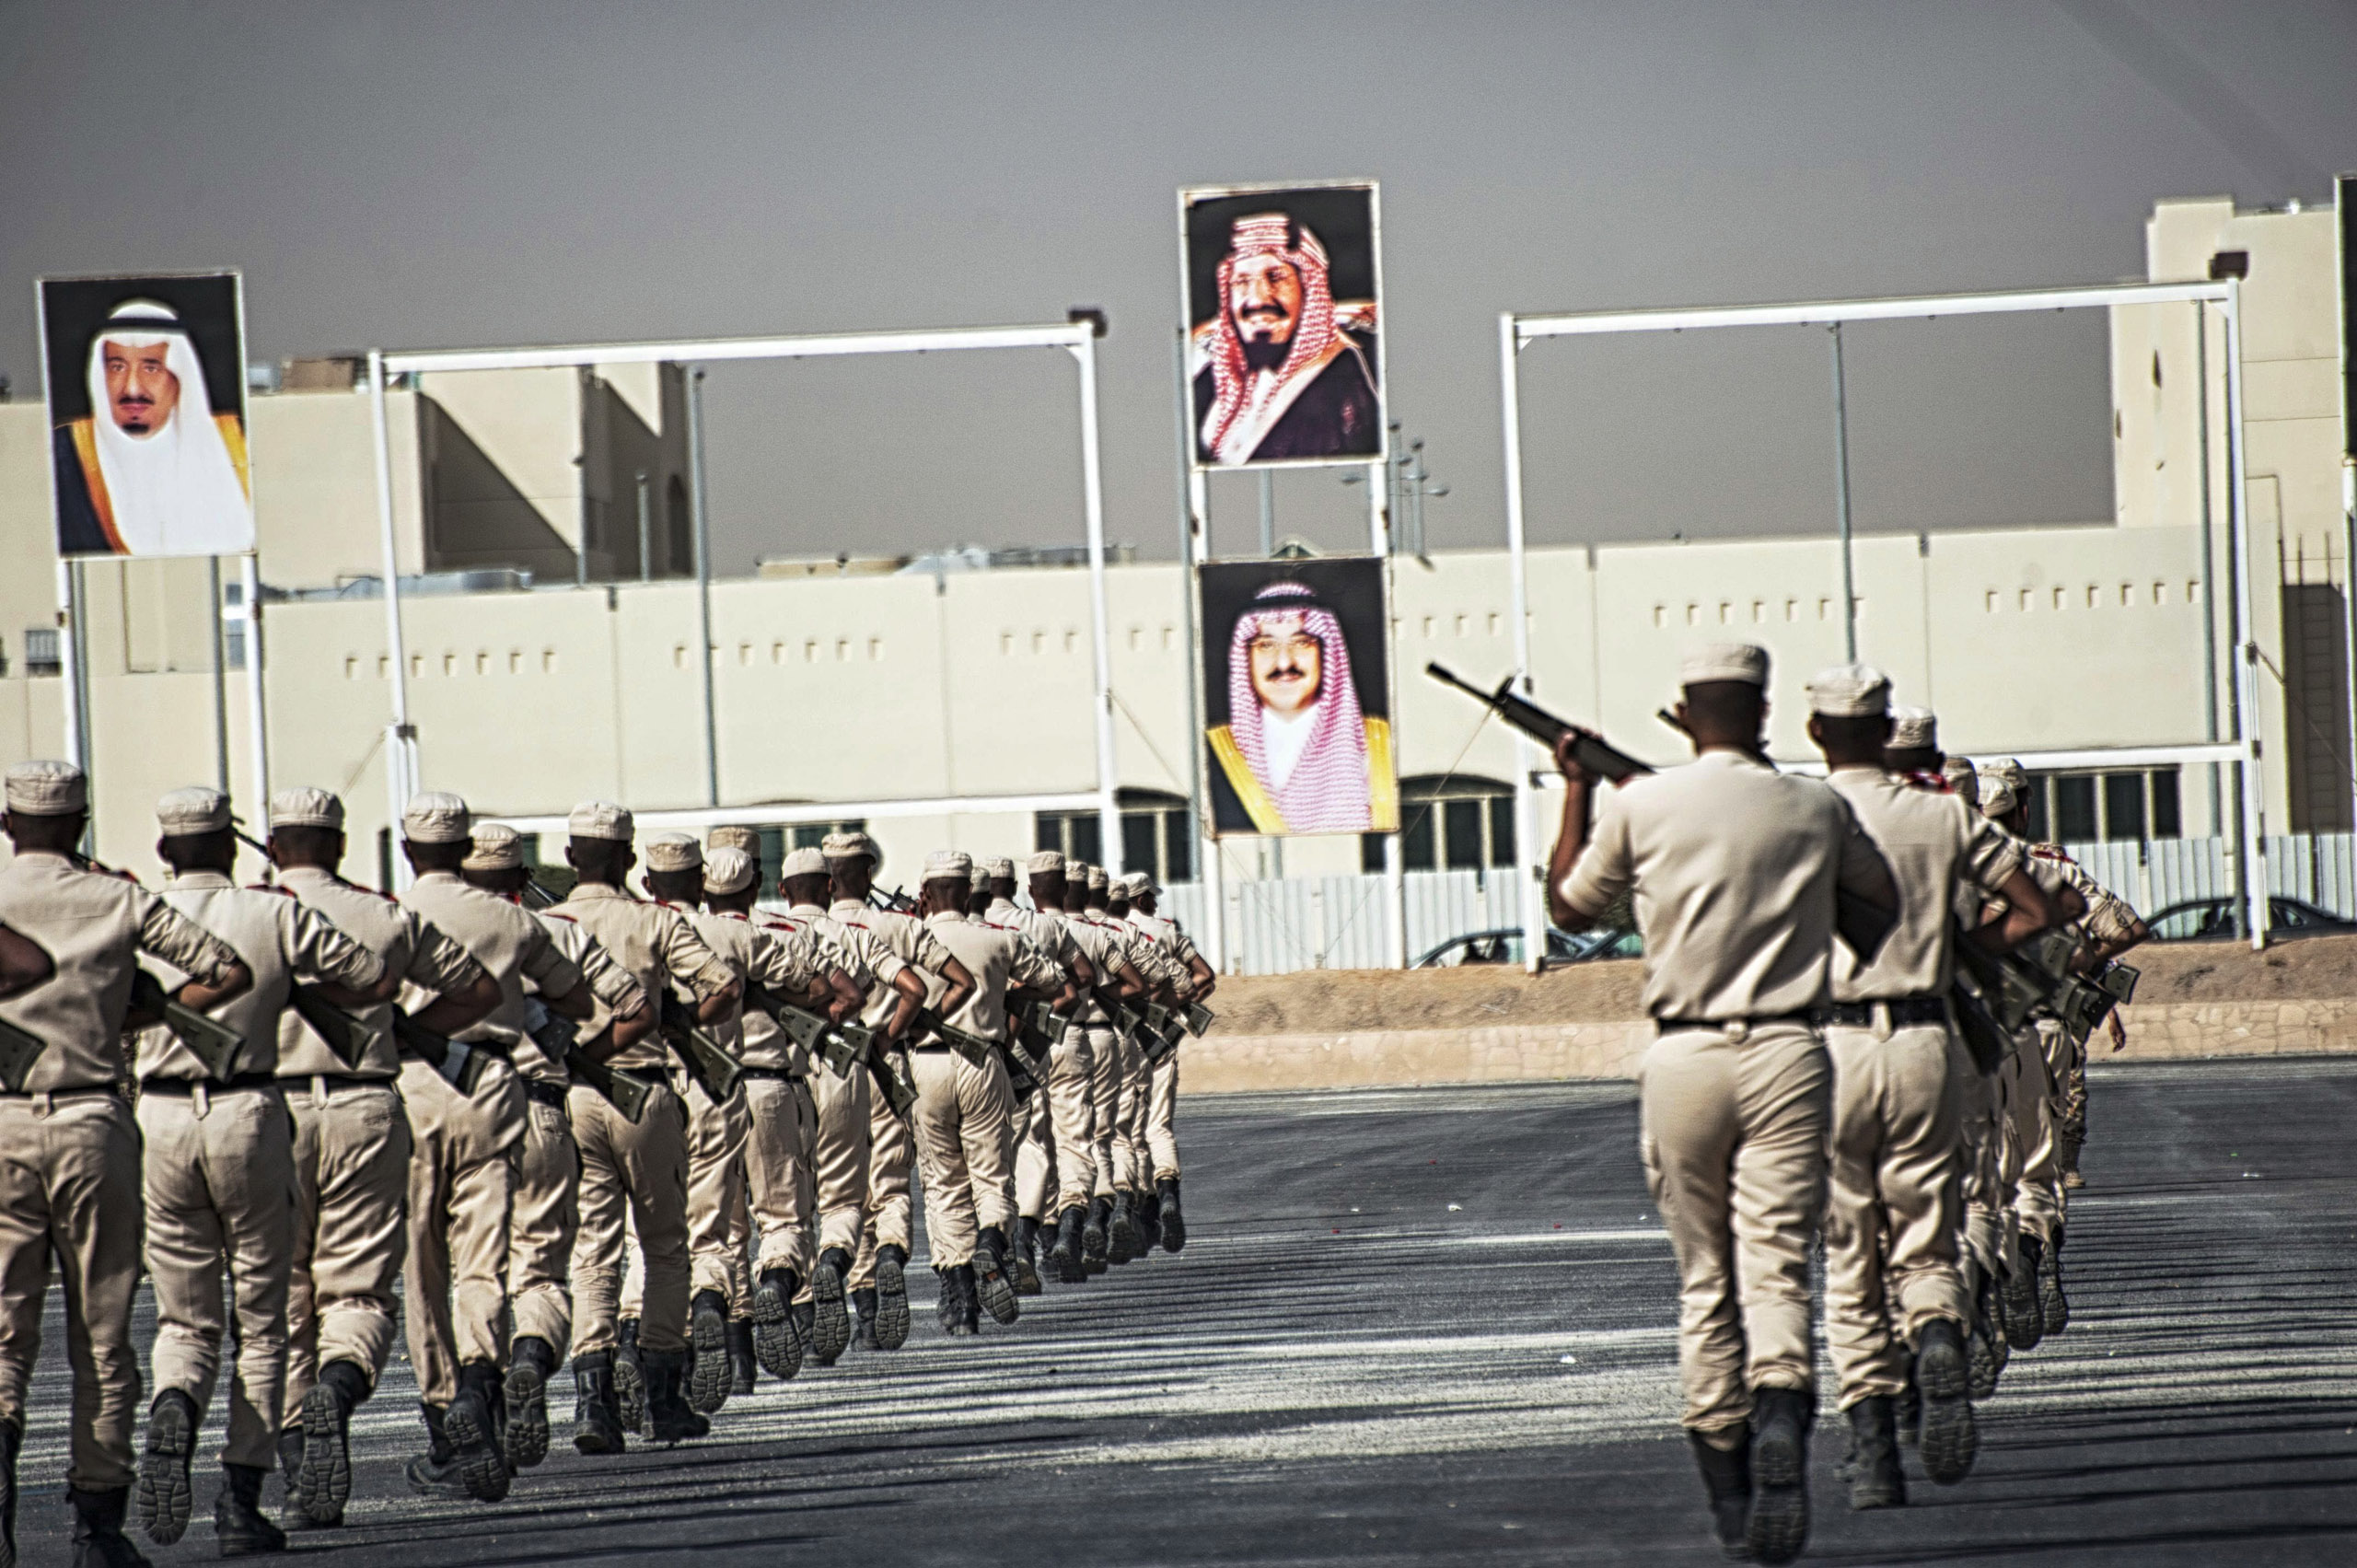 Troops with the Saudi Special Security Forces perform a show of force below images of the Royal family, from left: King Salman bin AbdulAziz, King AbdulAziz, Prince Mohammed bin Nayef, at the Counter-Terrorism Training School camp, March 5, 2013.